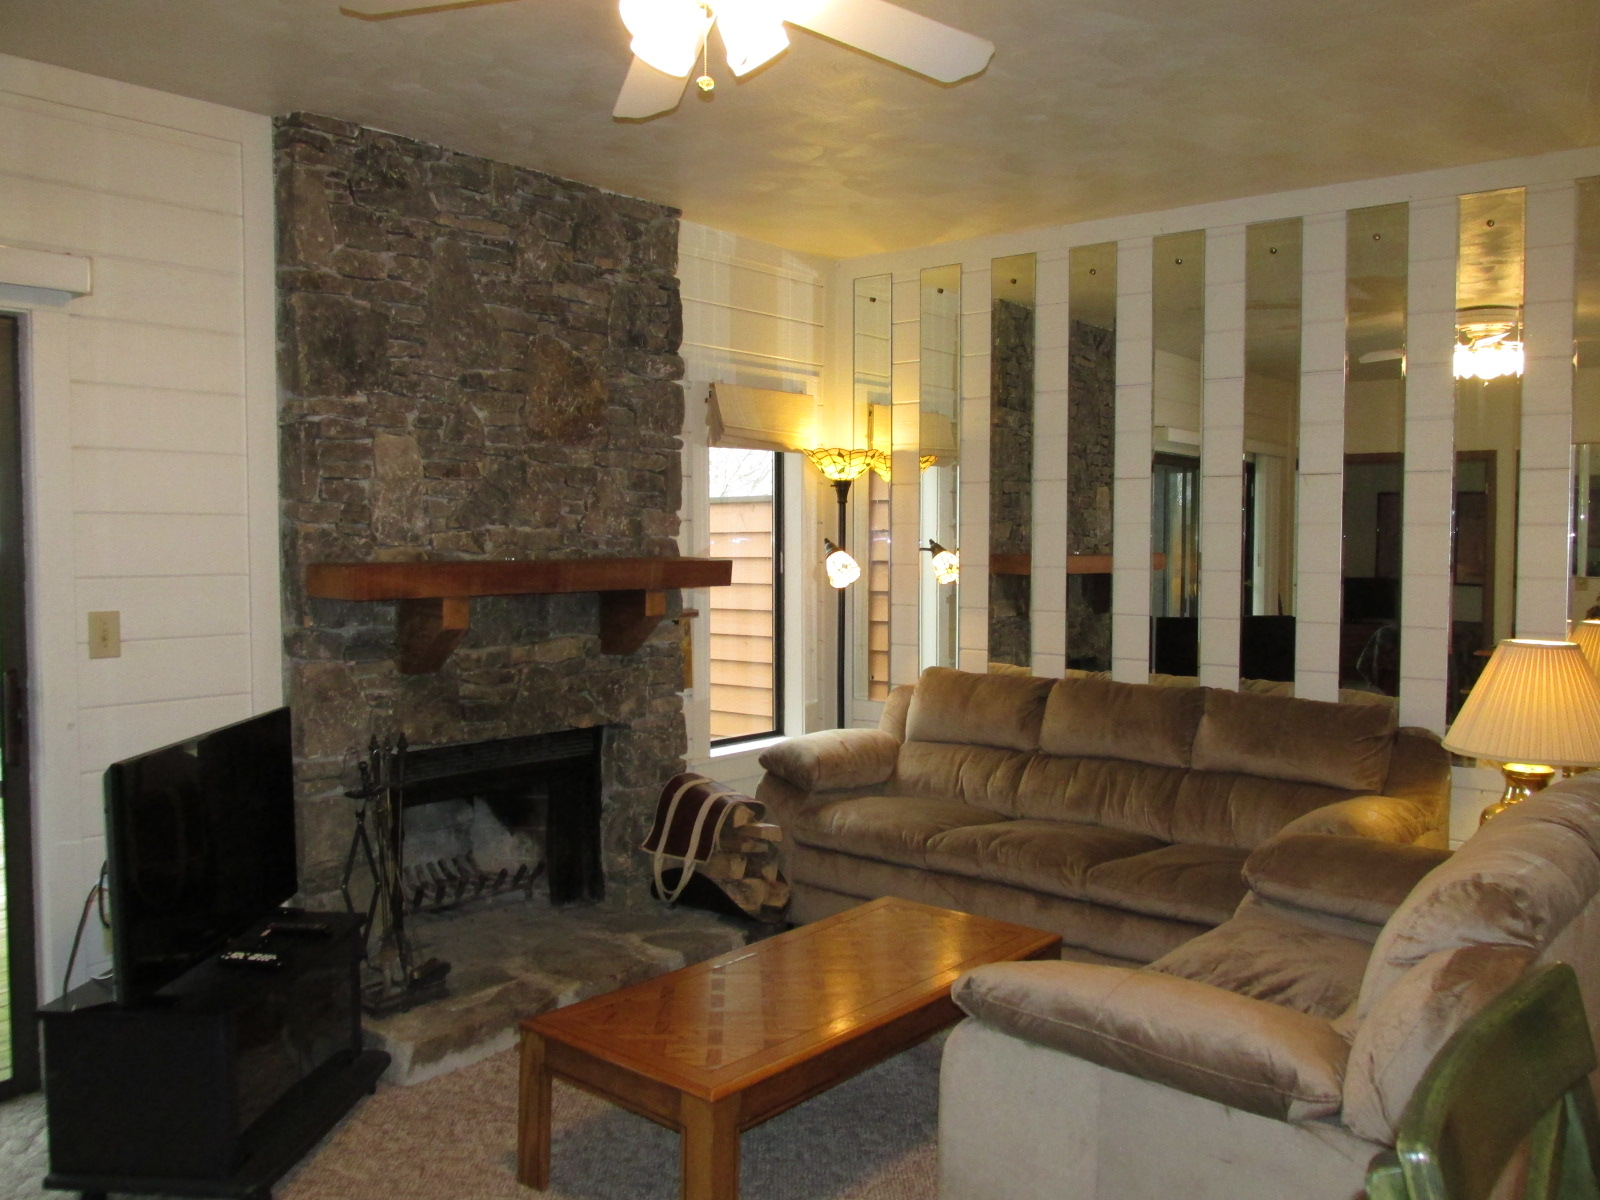 3003 swiss mountain drive 7 springs pa 15622 u2014 laurel highlands